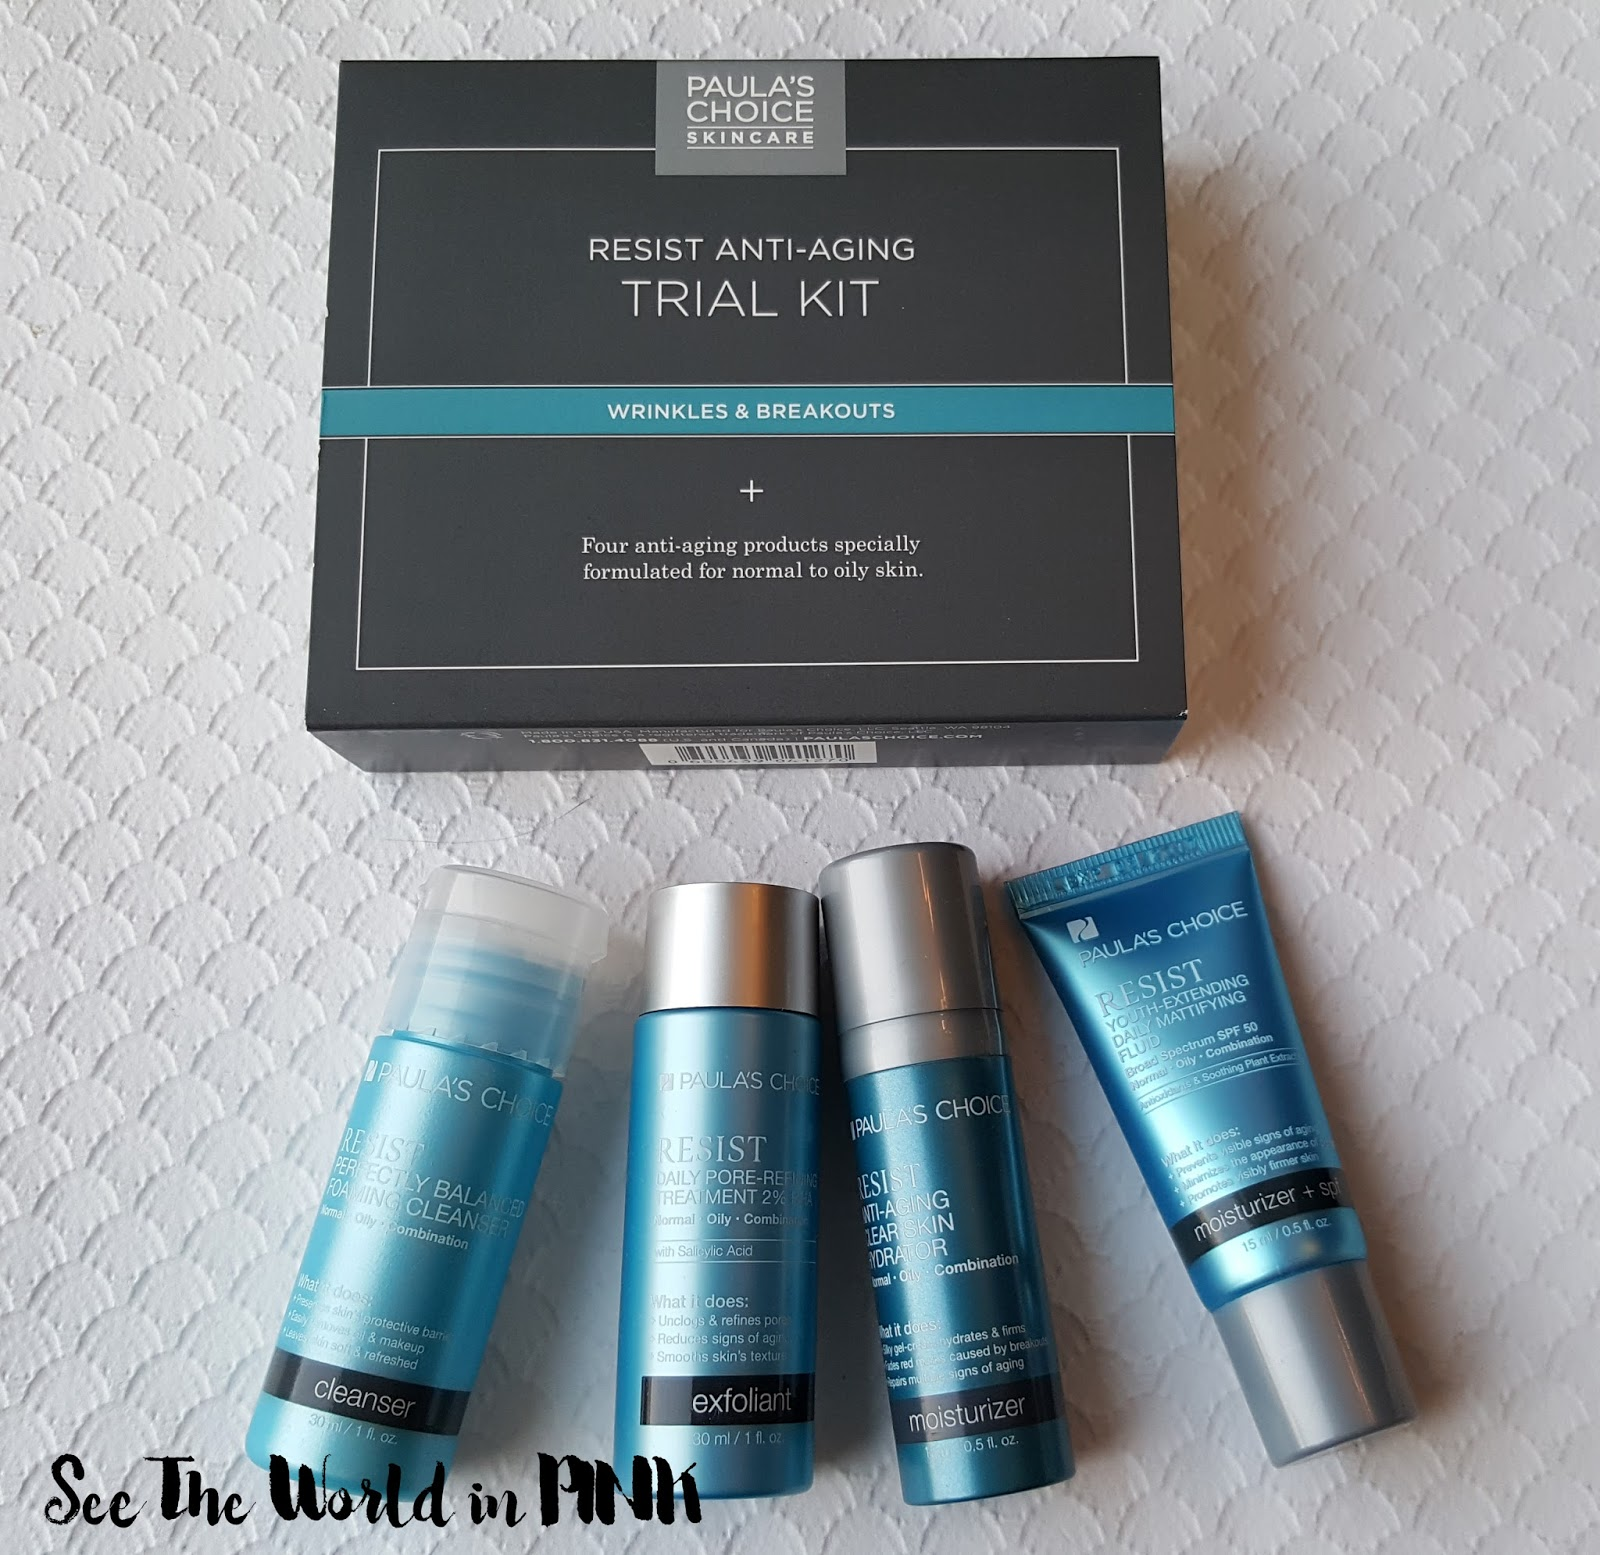 Paula's Choice Resist Anti-Aging Trial Kit